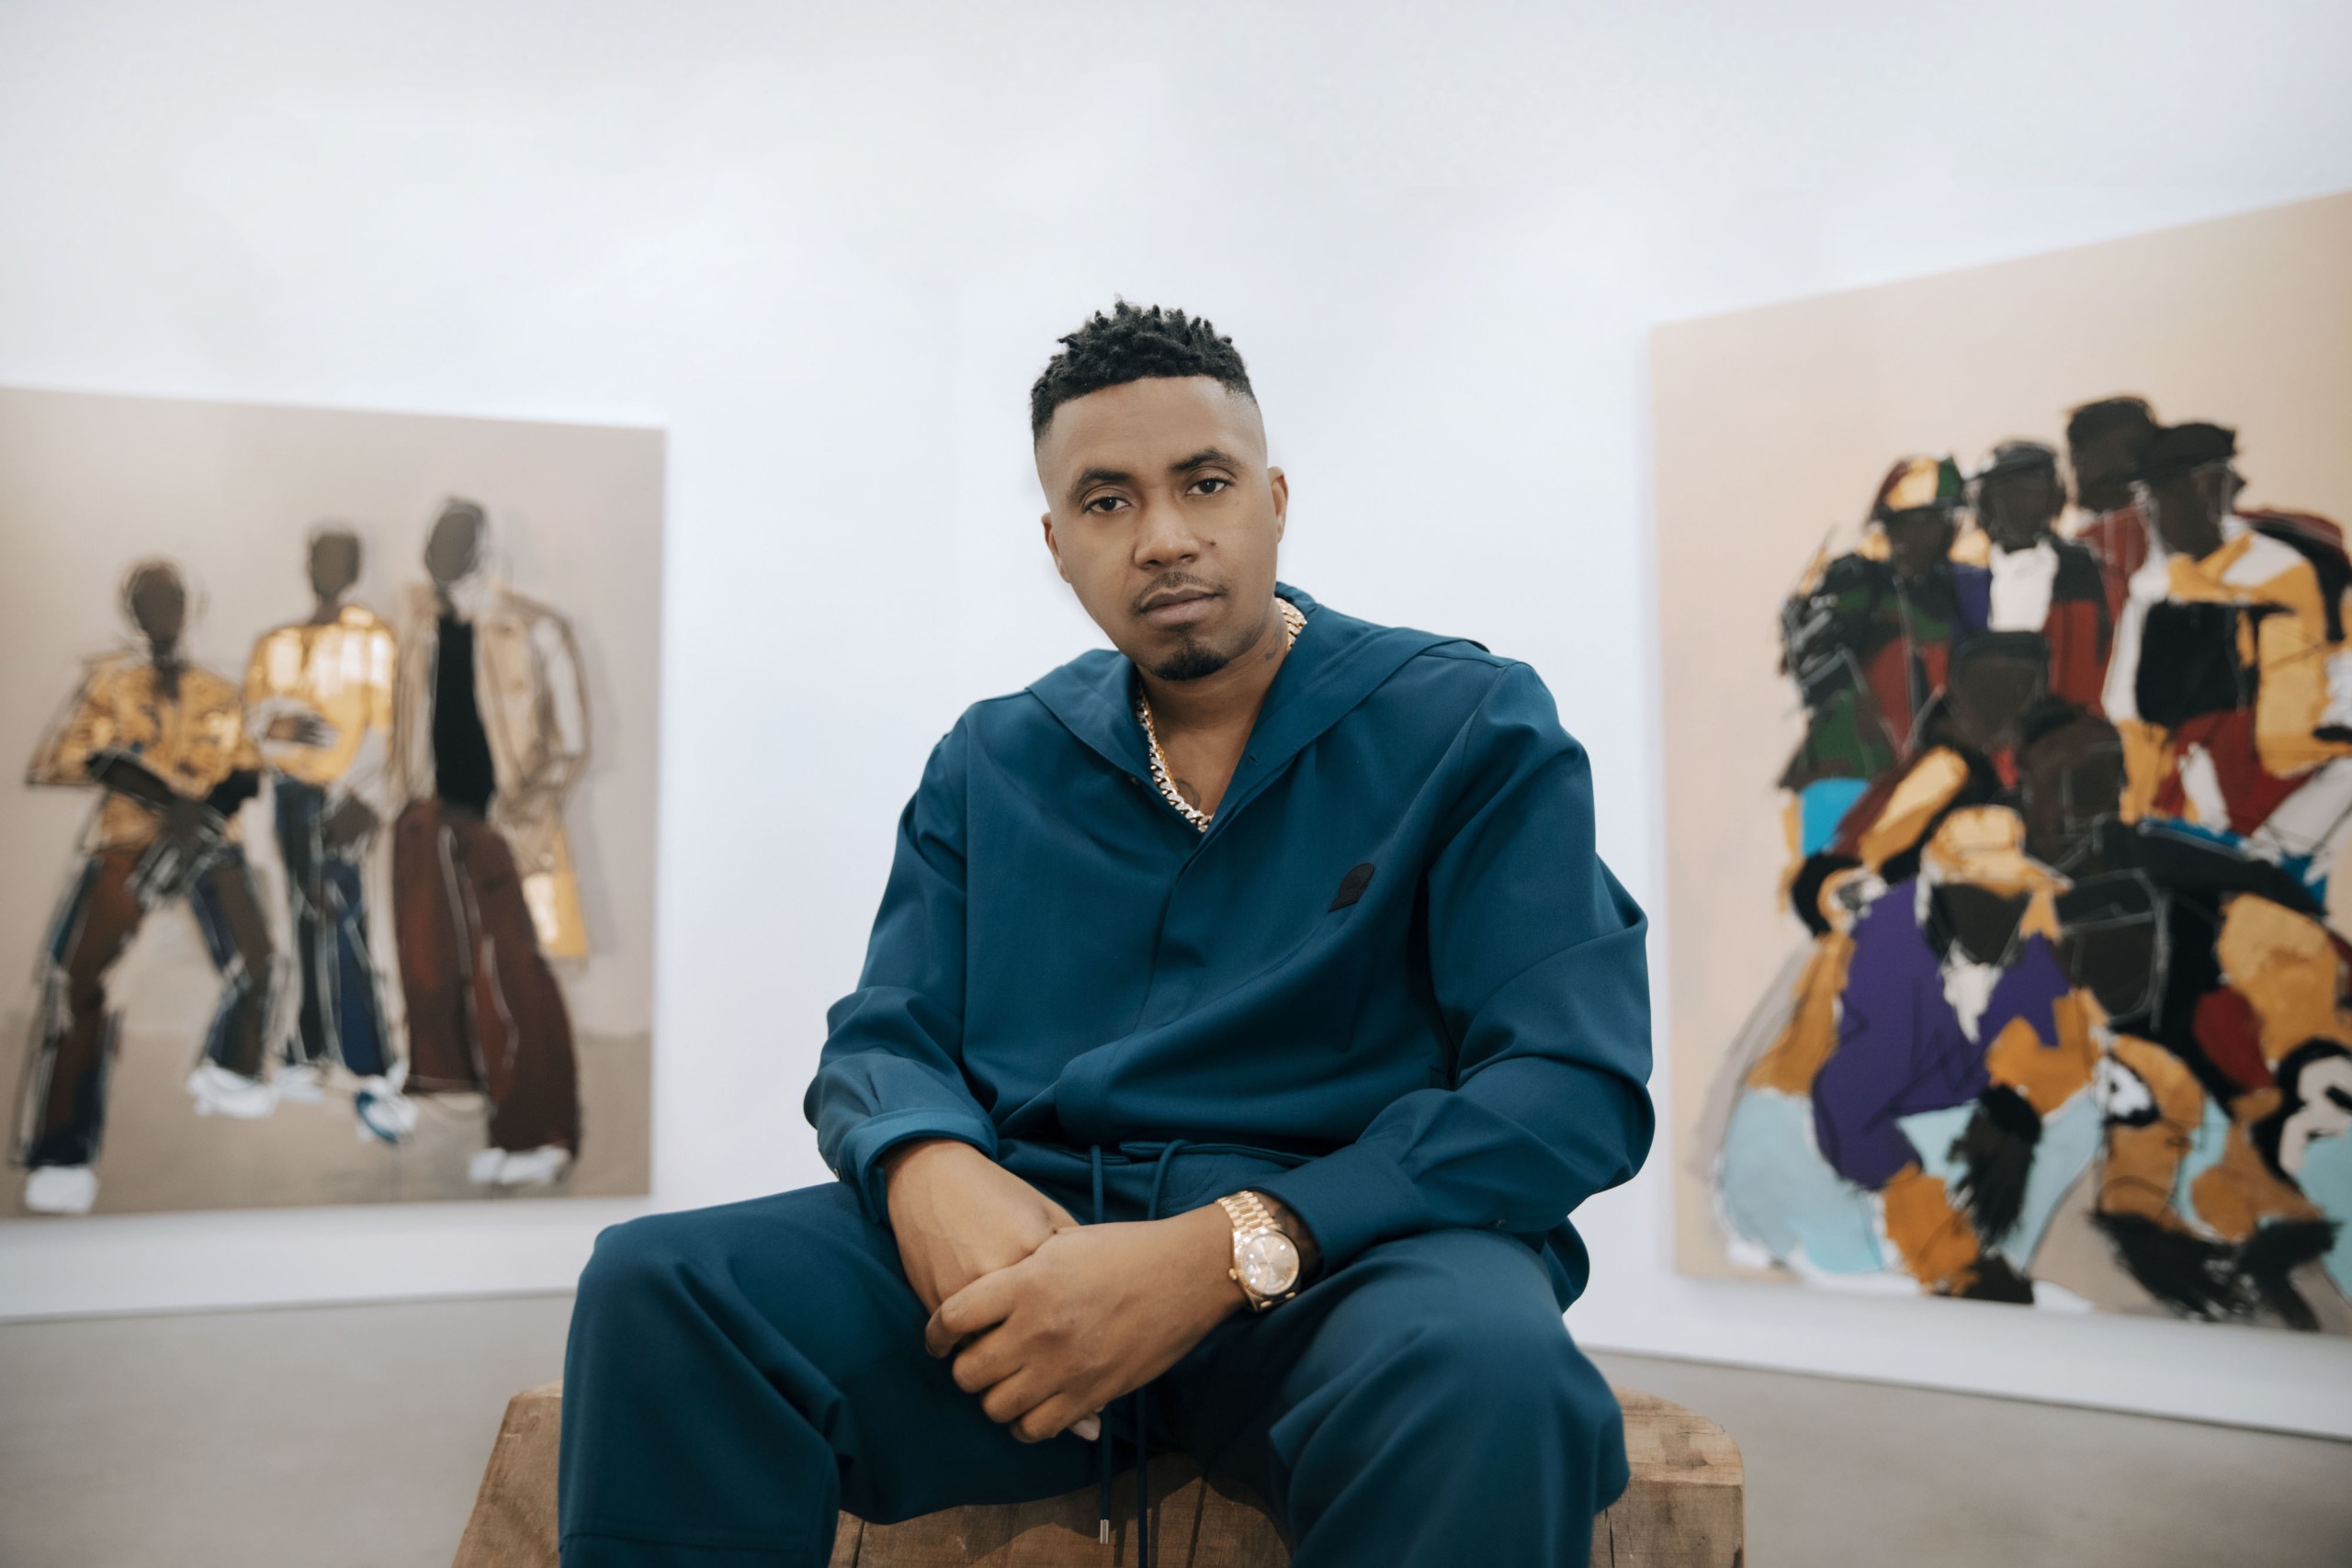 Musician sitting in gallery space, in front of 2 paintings